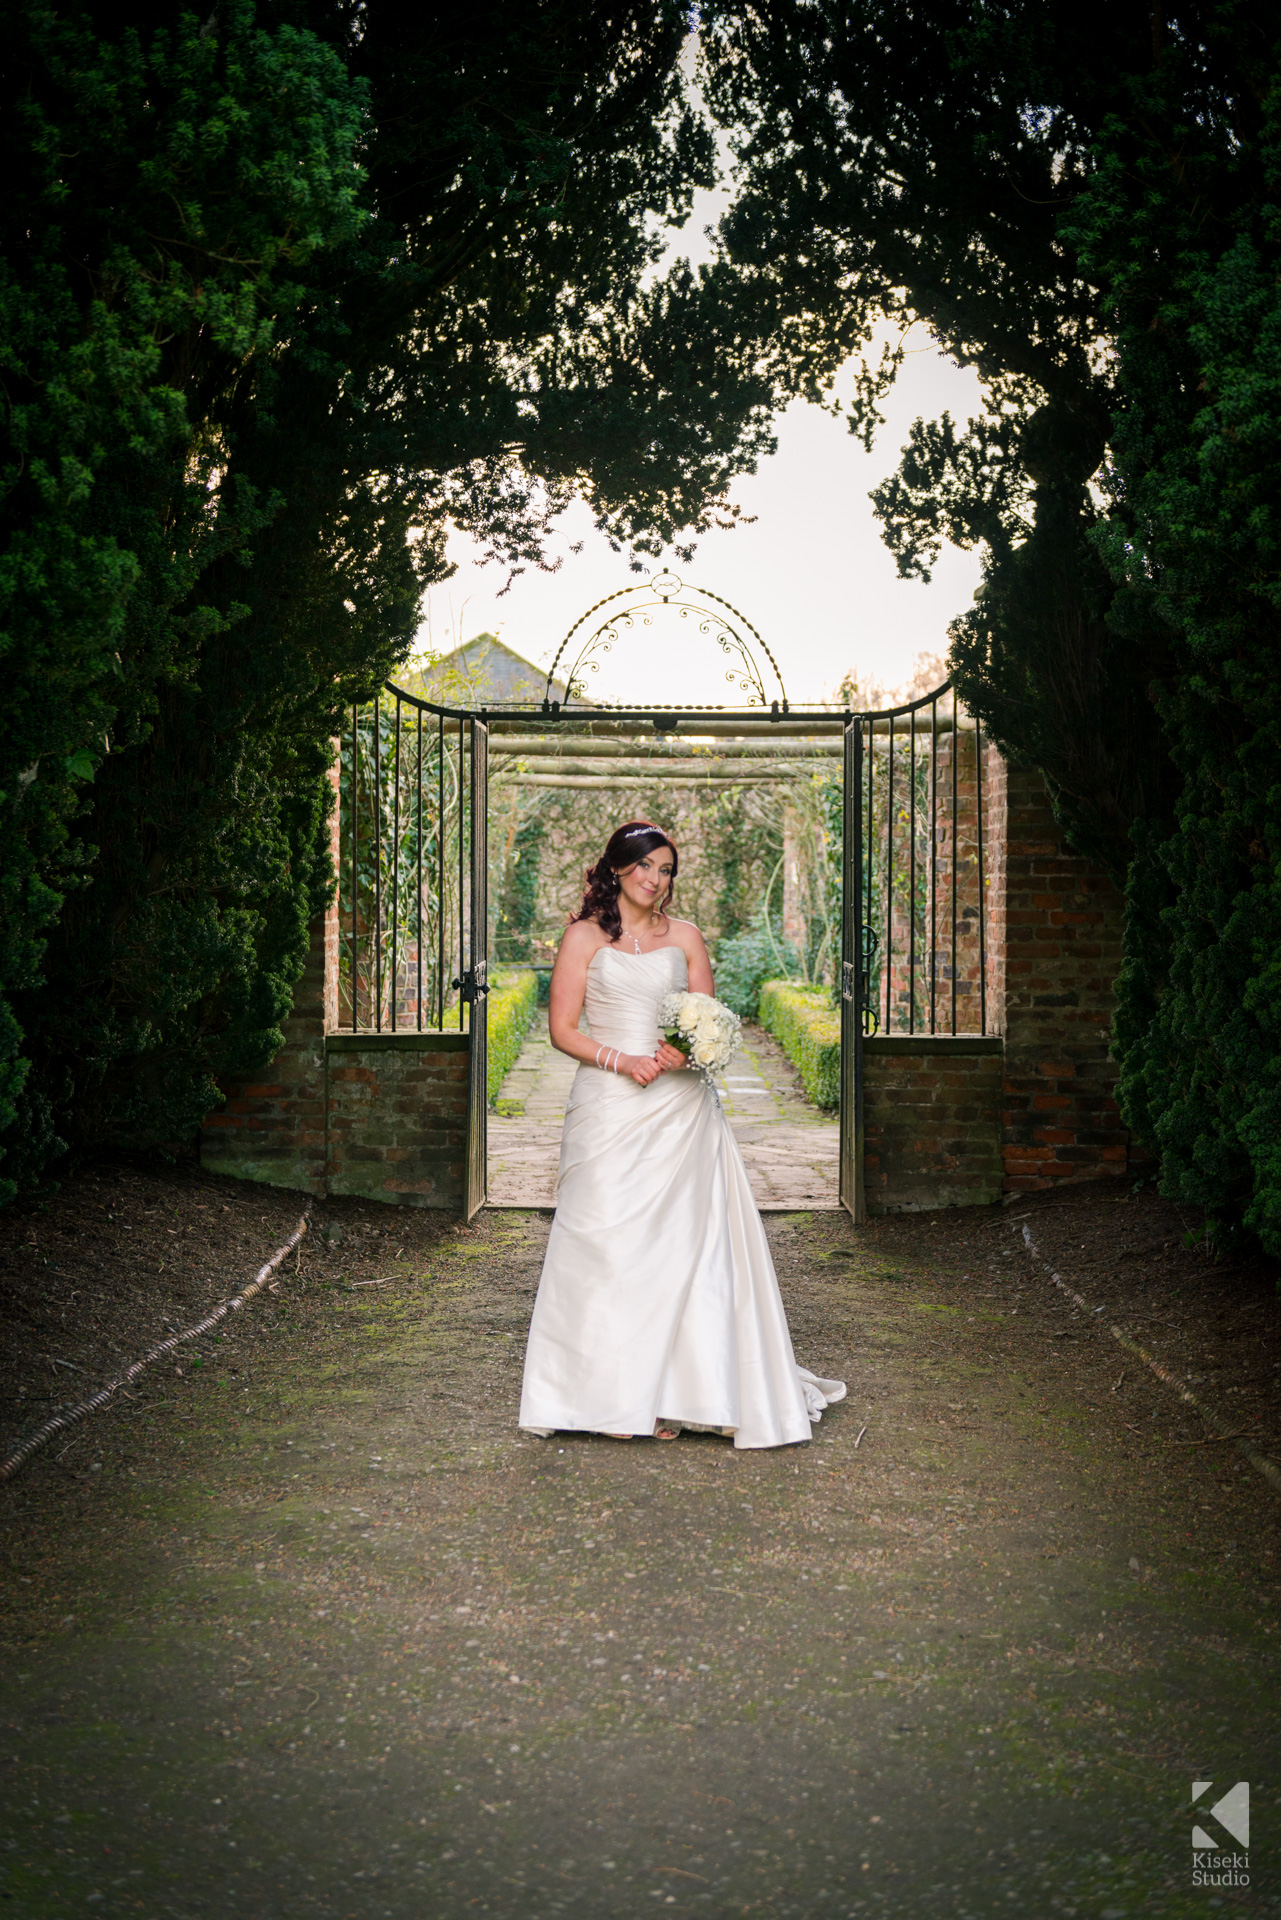 Ripley Castle Wedding - Beautiful Bride outside in the grounds